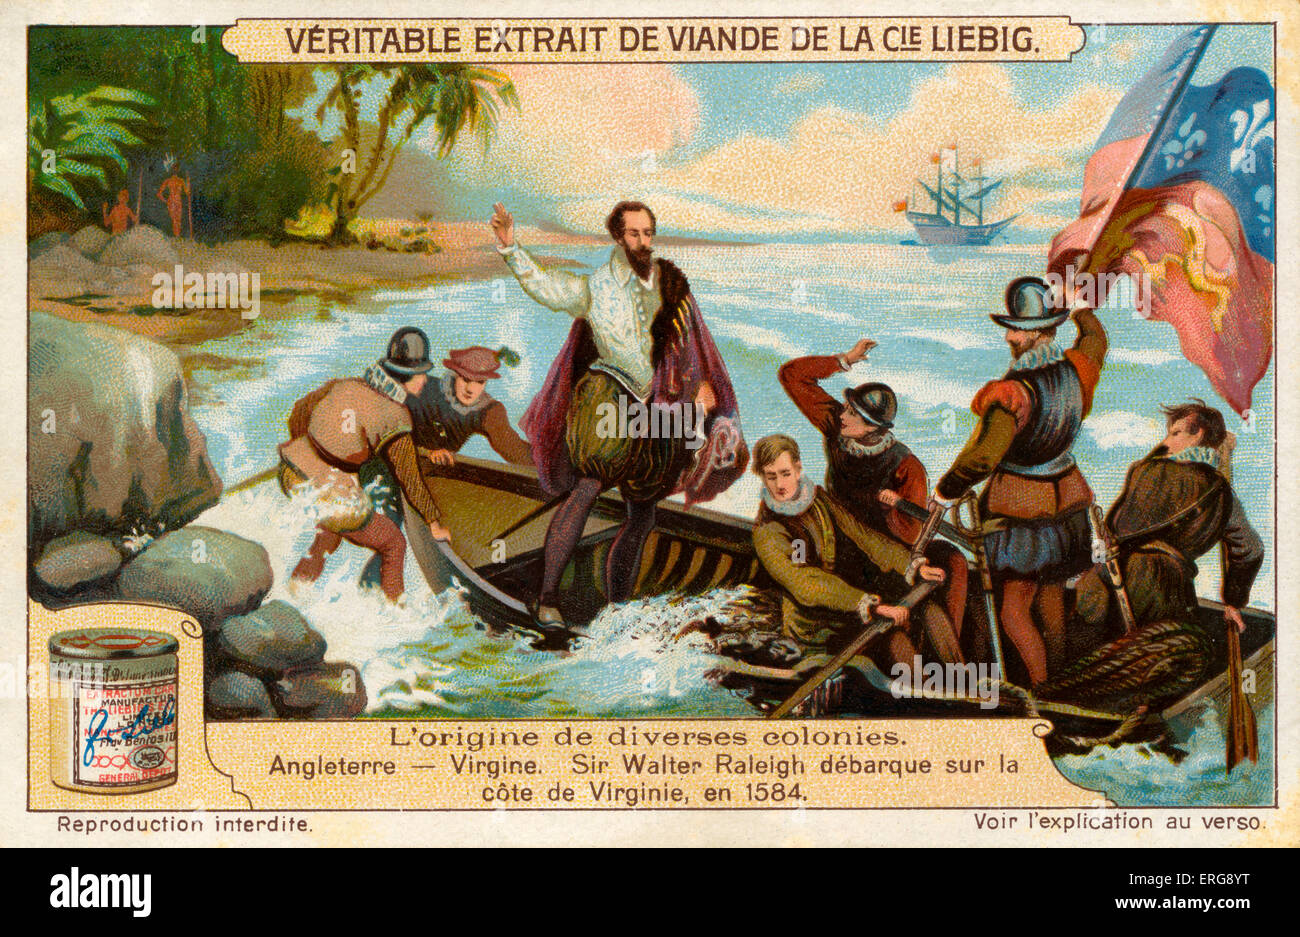 Founding of the colony of Virginia by the English: Sir Walter Raleigh (ca 1552 – 1618) landing on the coast of Virginia - Stock Image